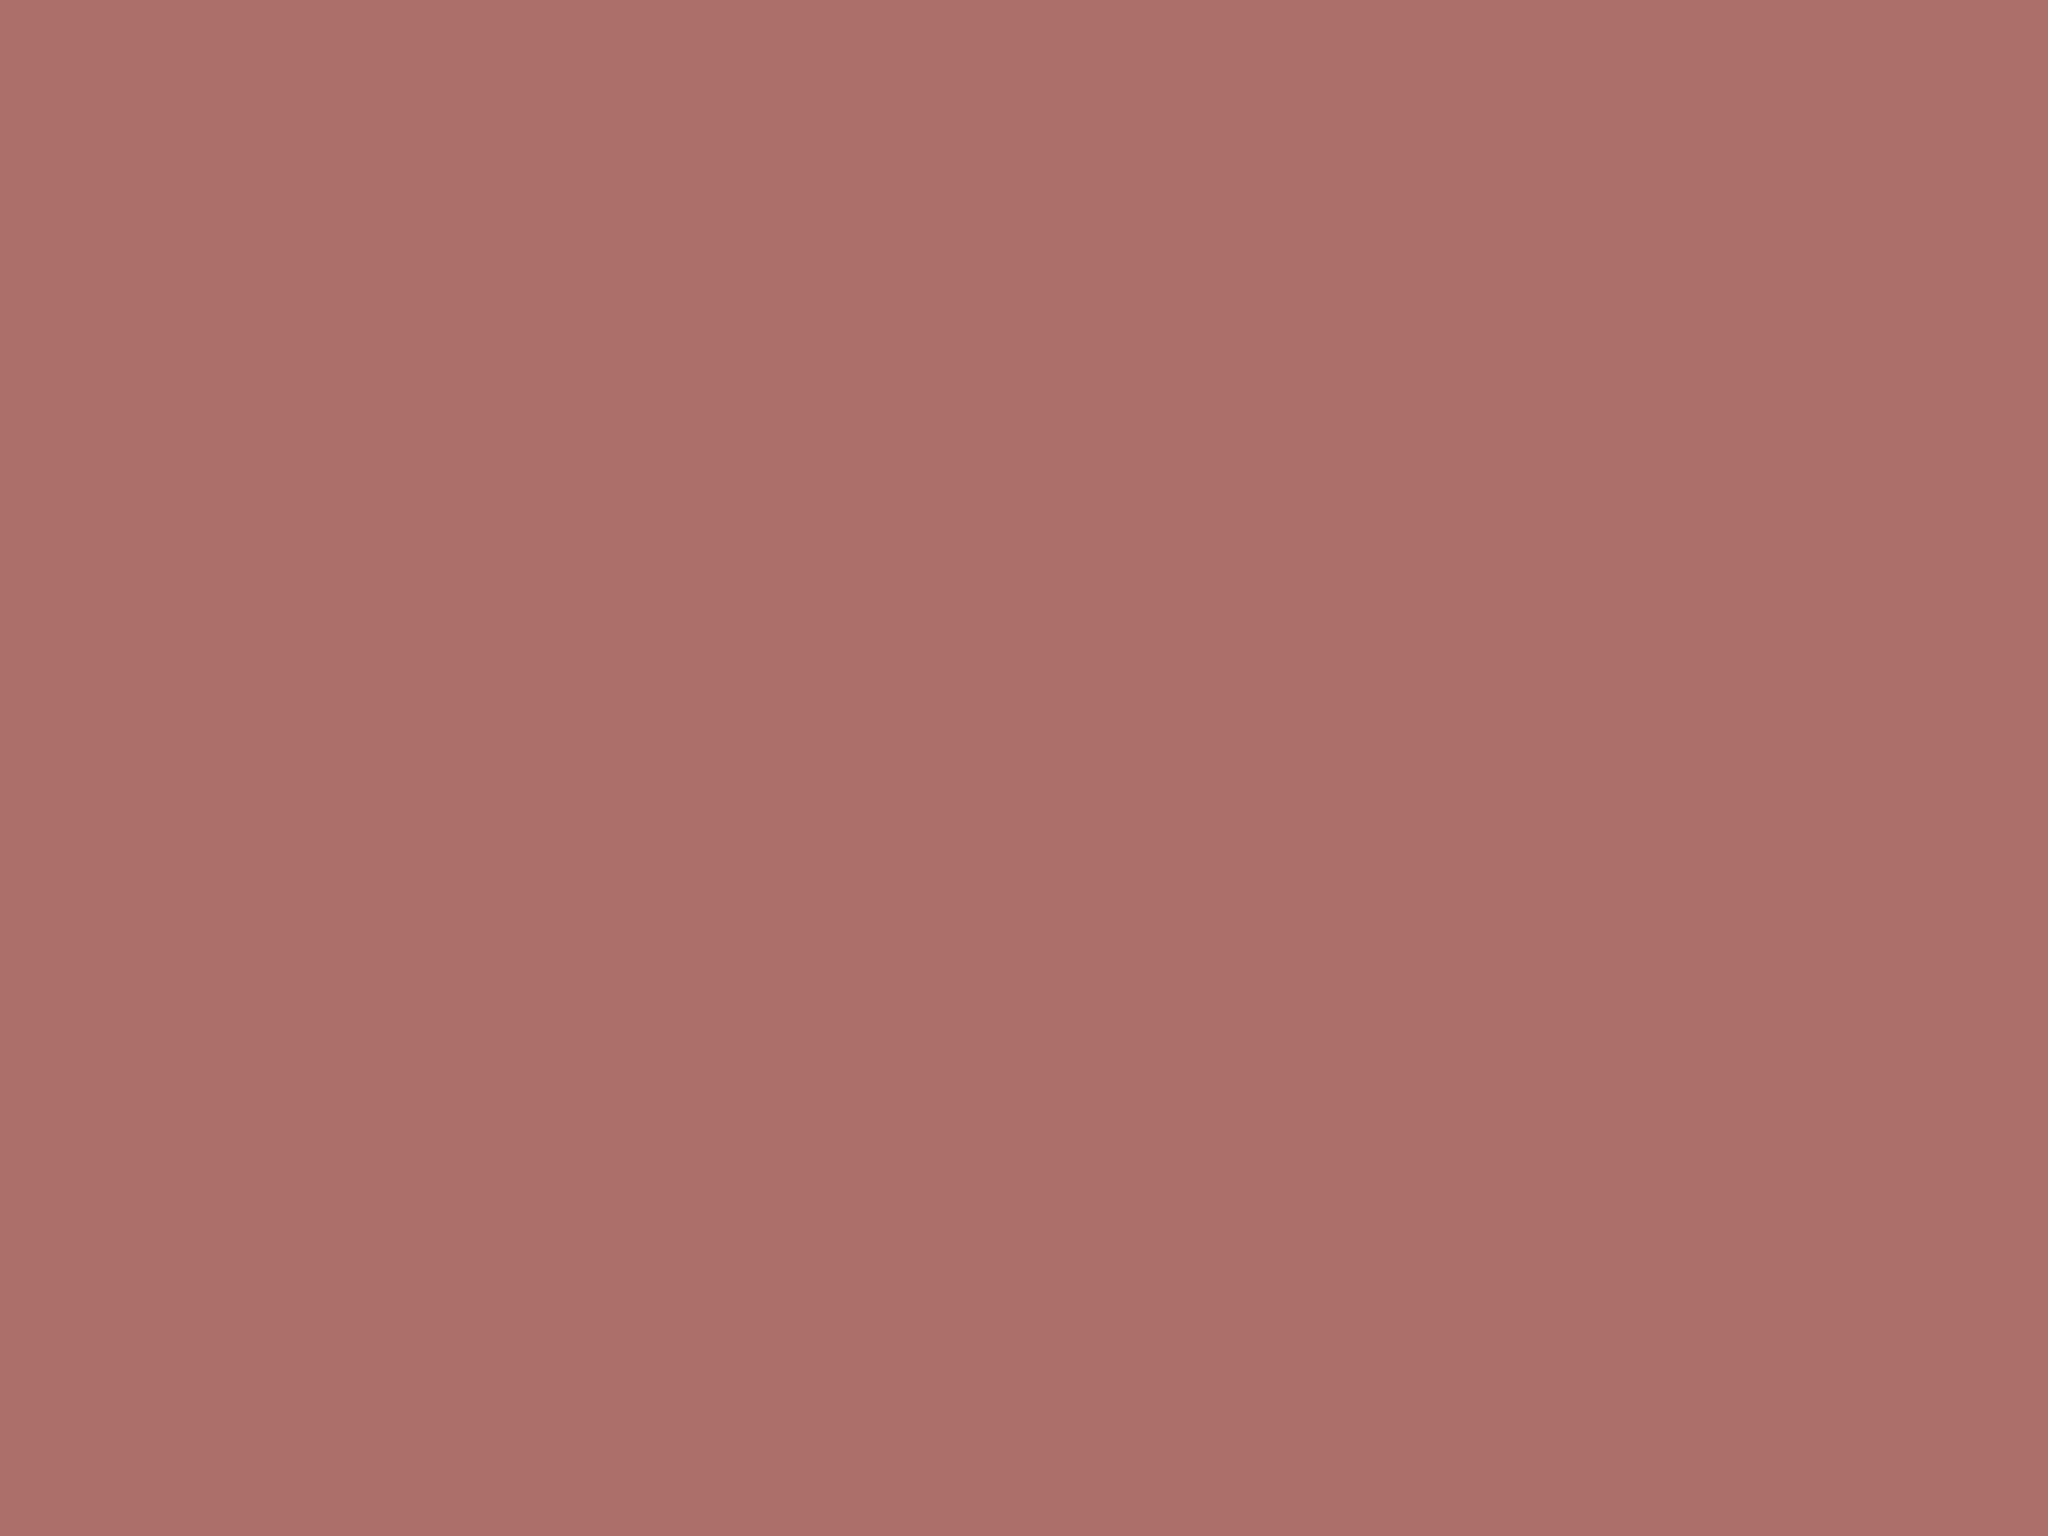 2048x1536 Copper Penny Solid Color Background